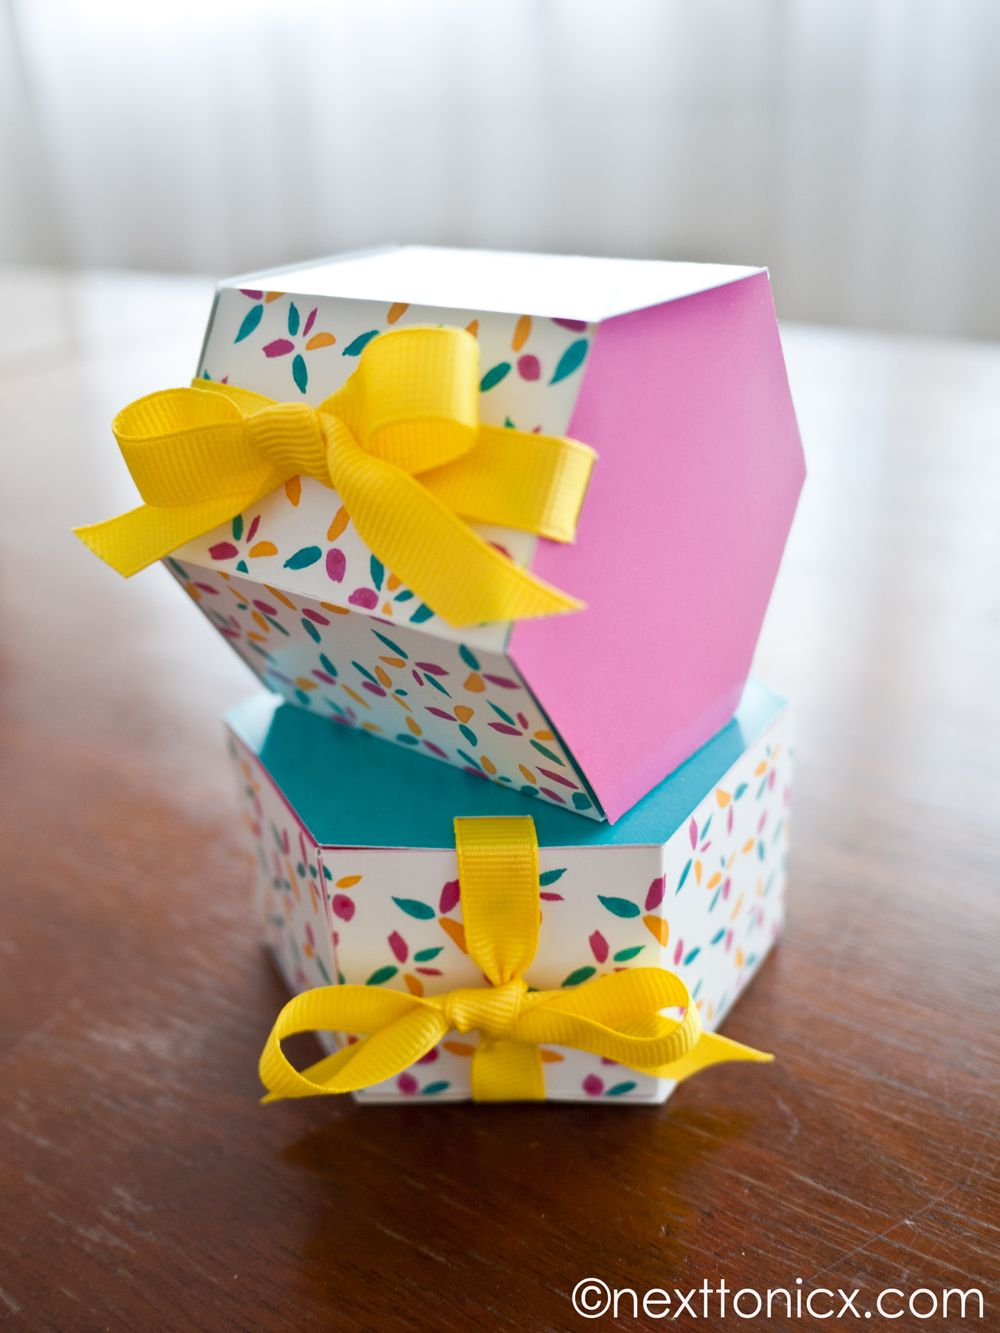 Hexagonal gift boxes gift wrapping inspiration paper